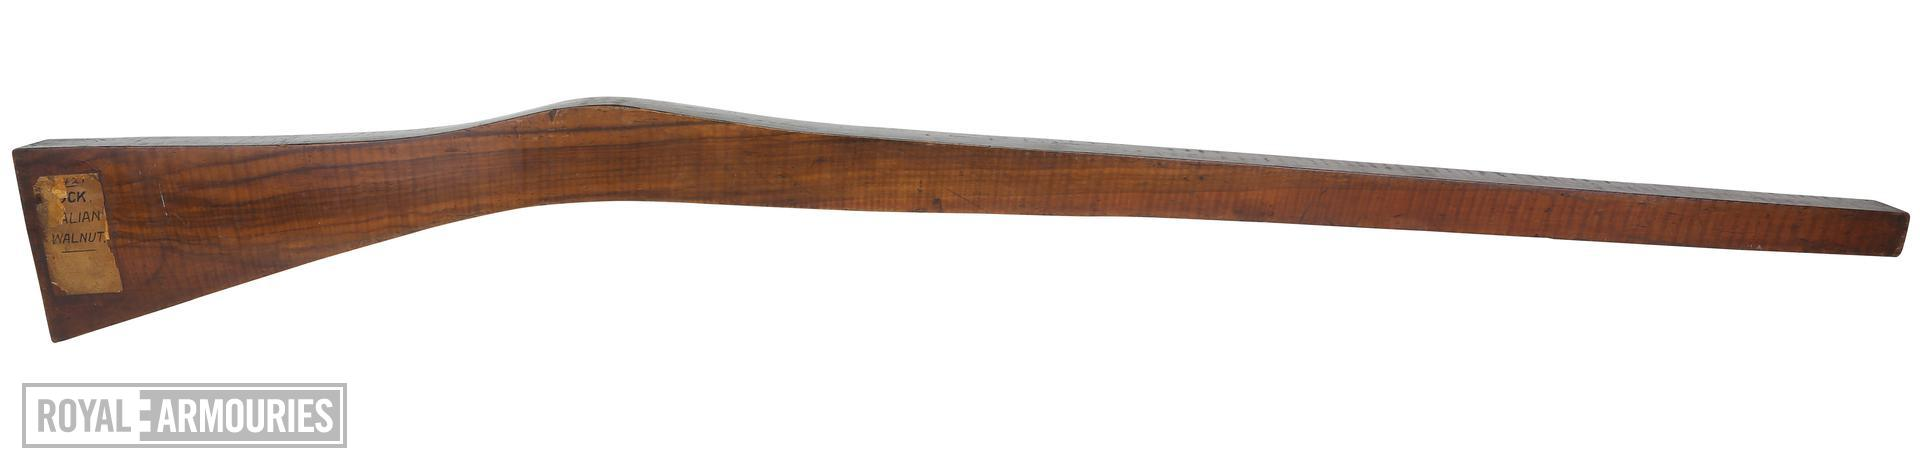 Wooden reference for P.53 Enfield Rifle PR.10142